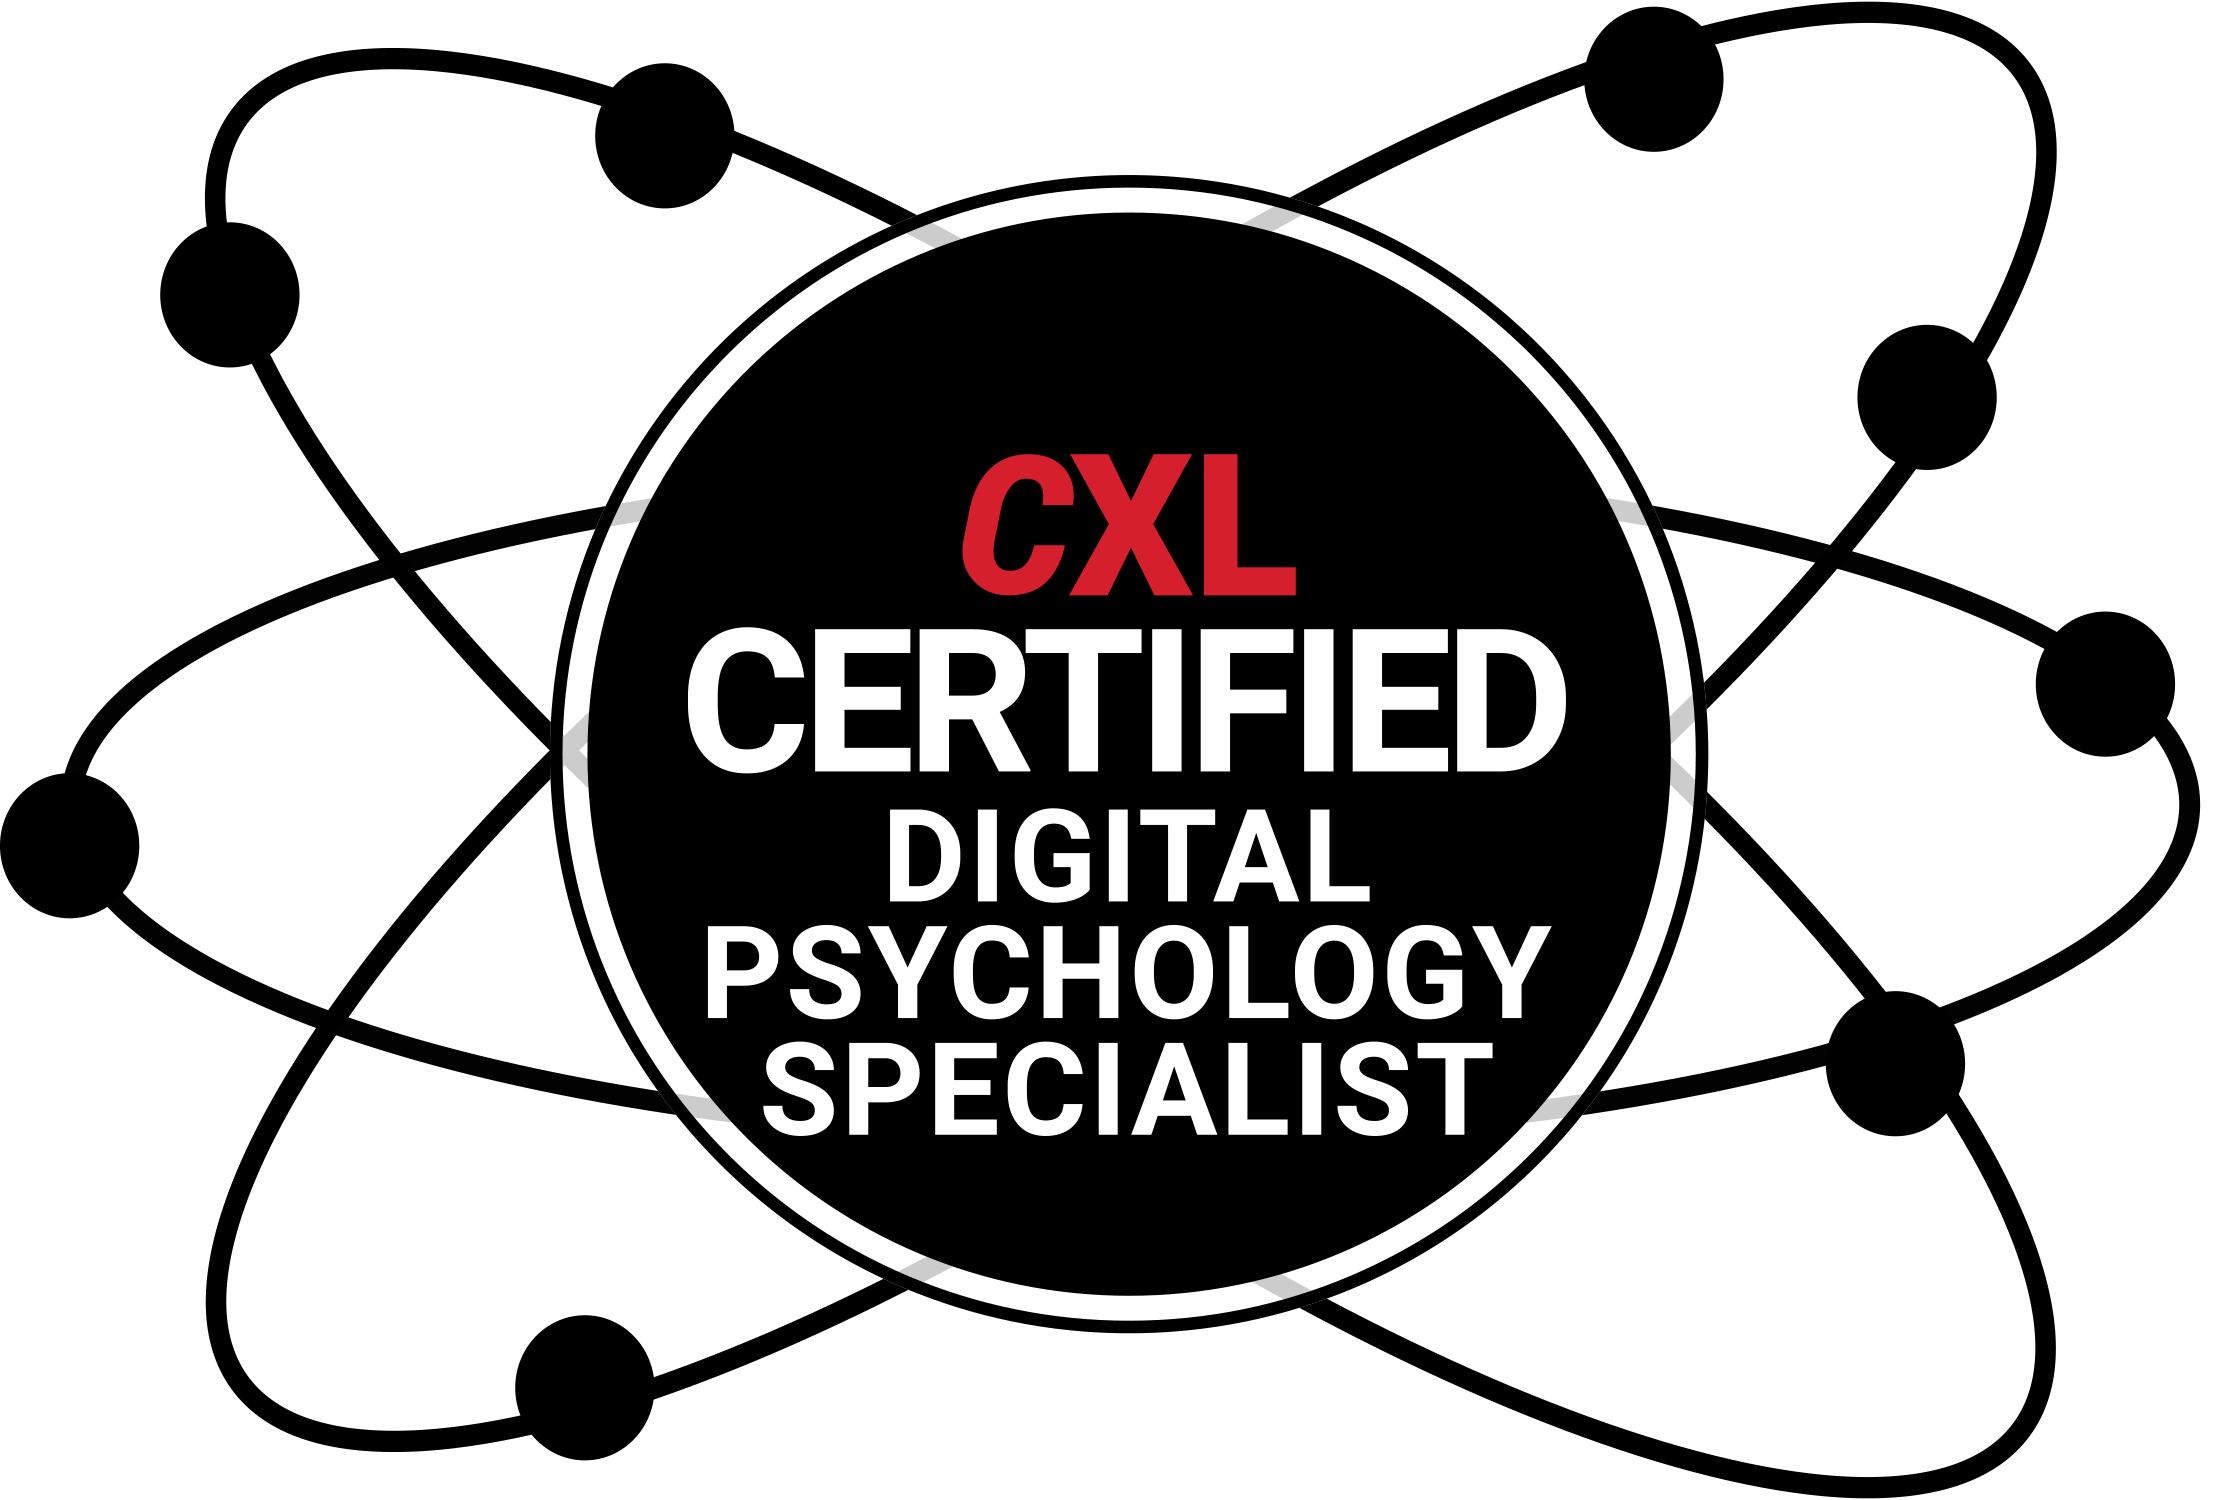 Digital Psychology Specialist CXM Certificate